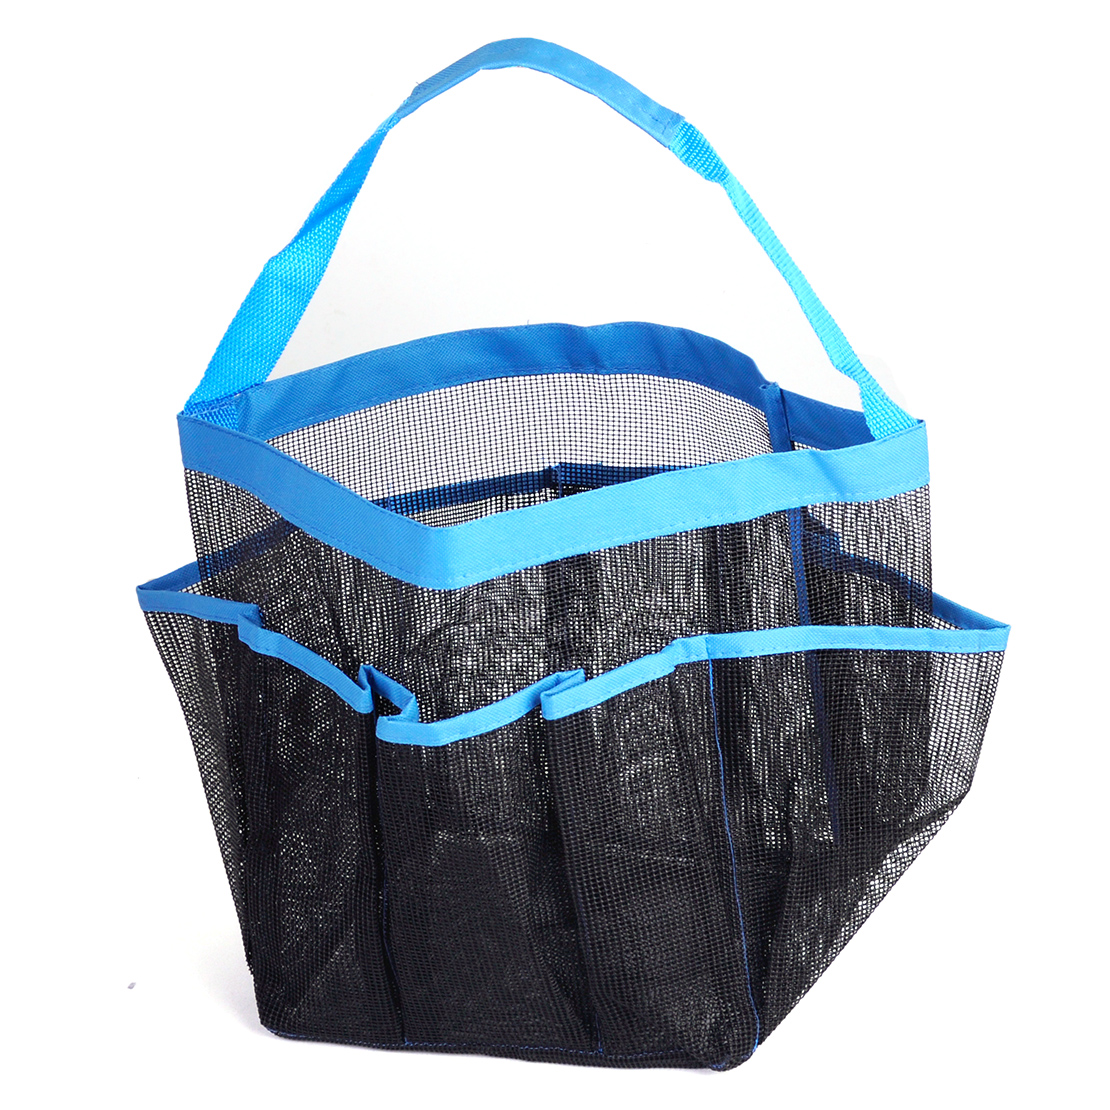 8 Pockets Mesh Quick Dry Shower Caddy Travel Tote with Carry Handle ...